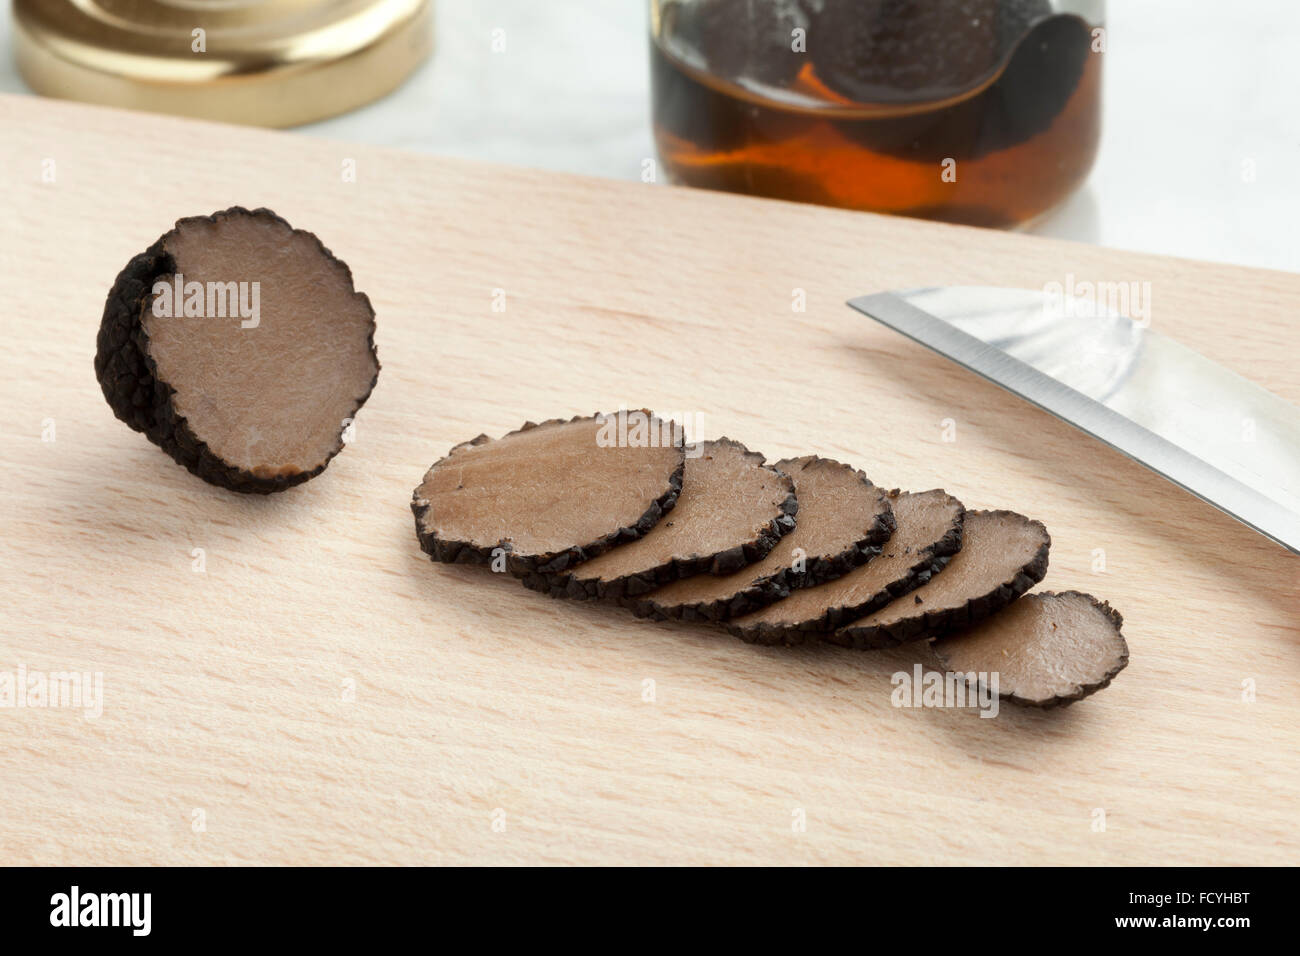 Preserved summer truffle from a pot cut into slices on a cutting board - Stock Image